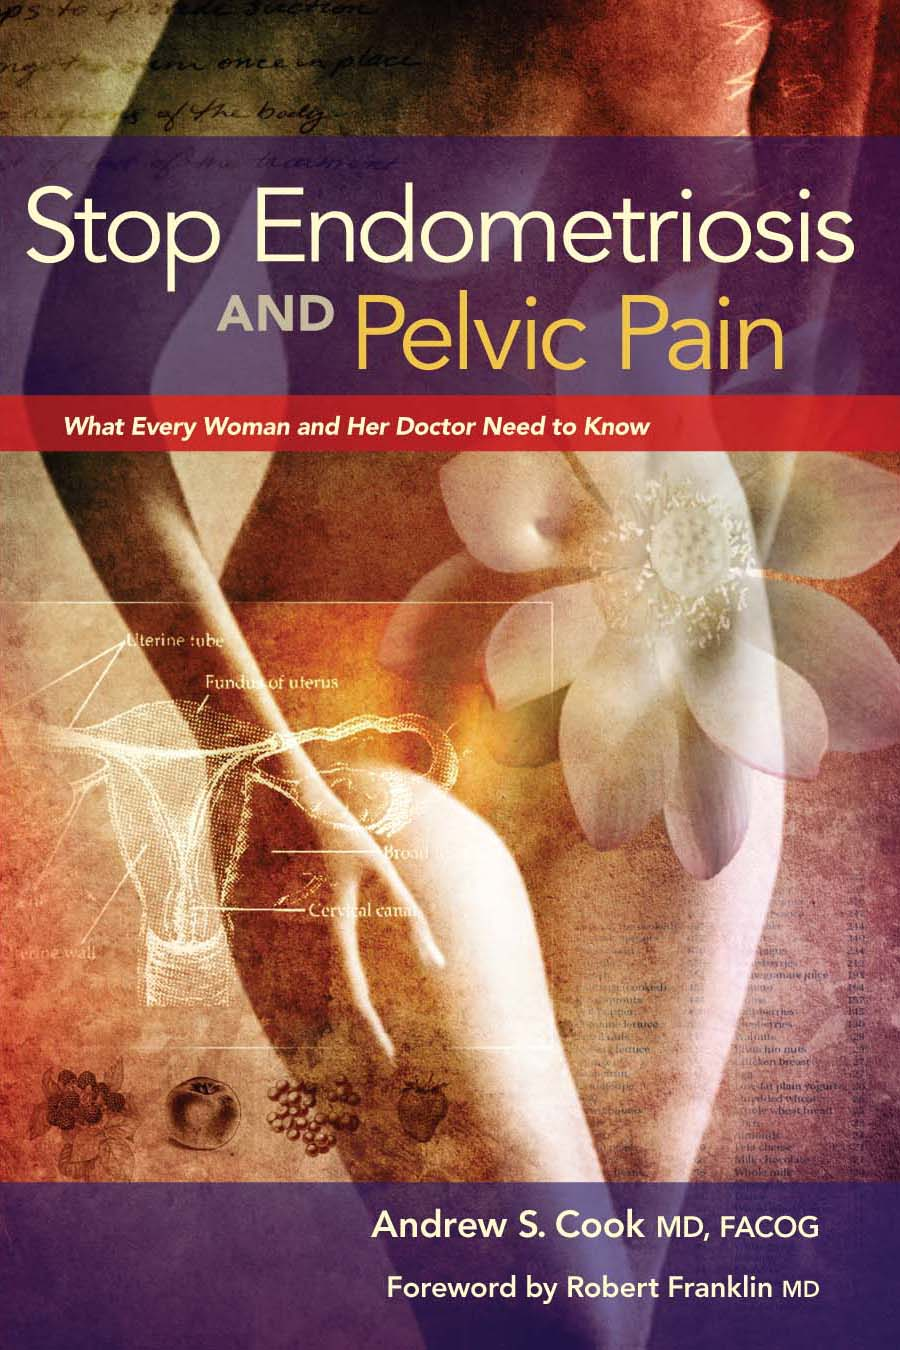 Stop Endometriosis and Pelvic Pain